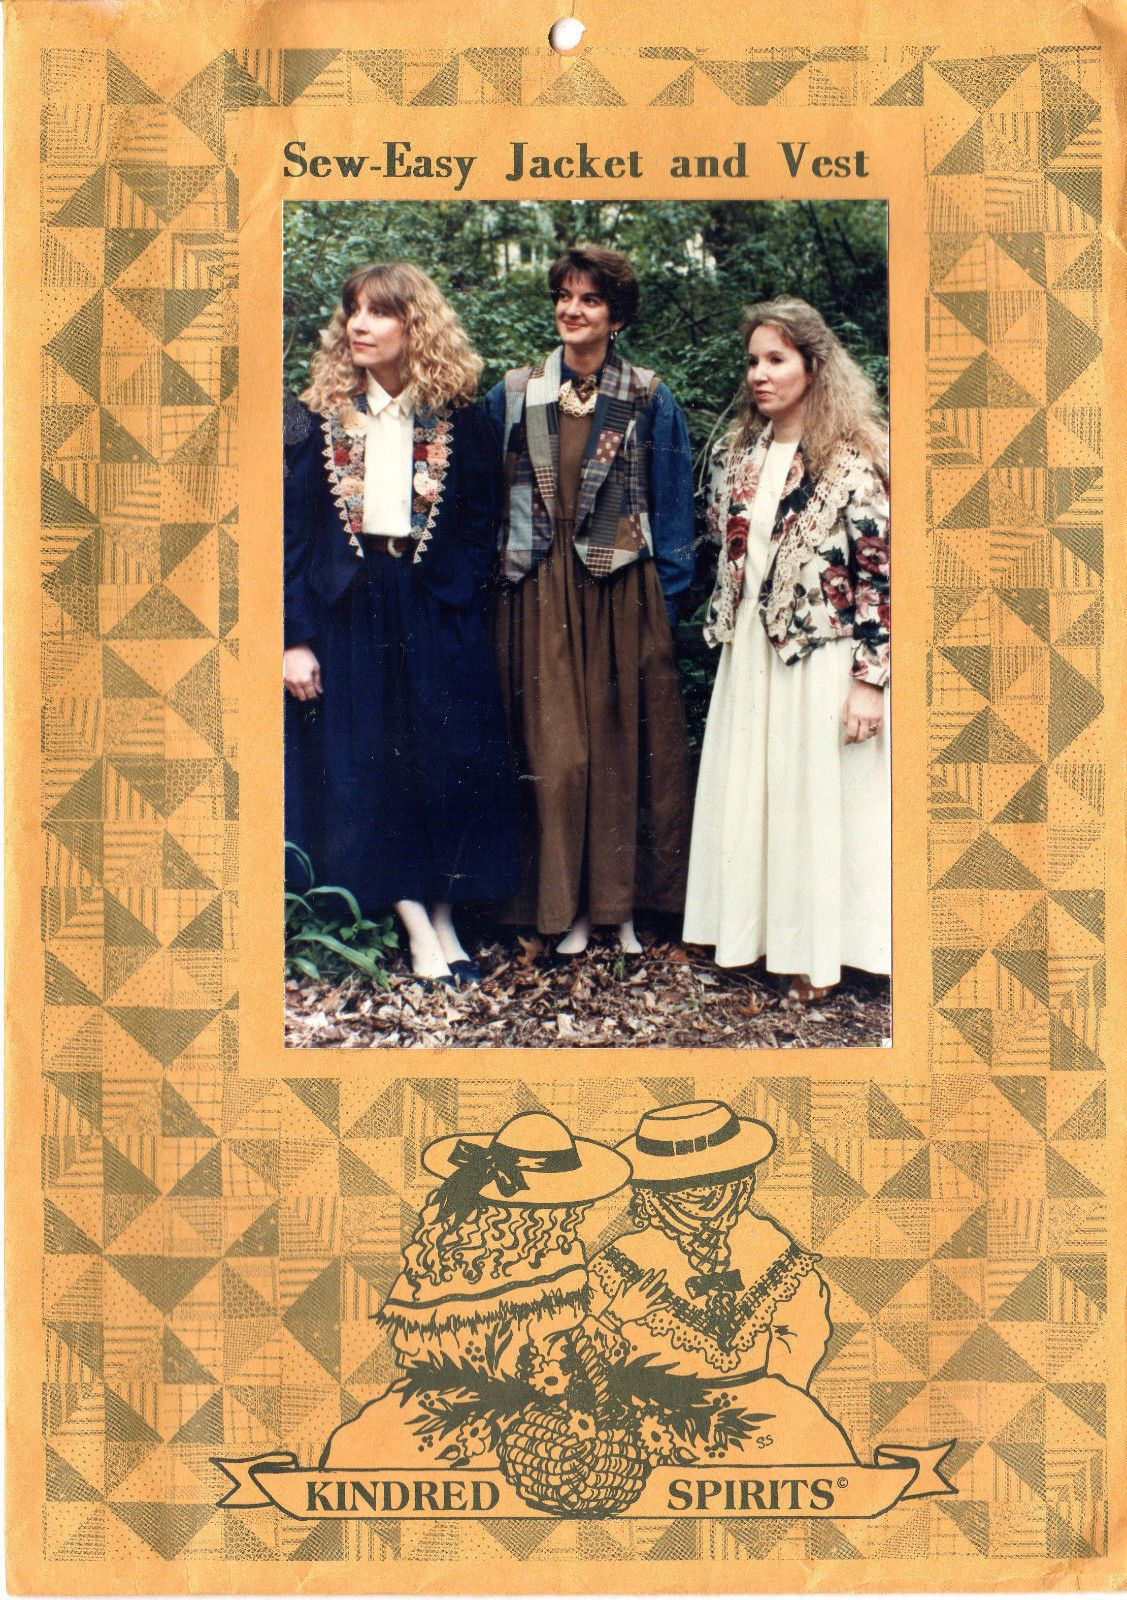 Kindred spirits sewing pattern sew easy jacket and vest in sizes kindred spirits sewing pattern sew easy jacket and vest in sizes s jeuxipadfo Images